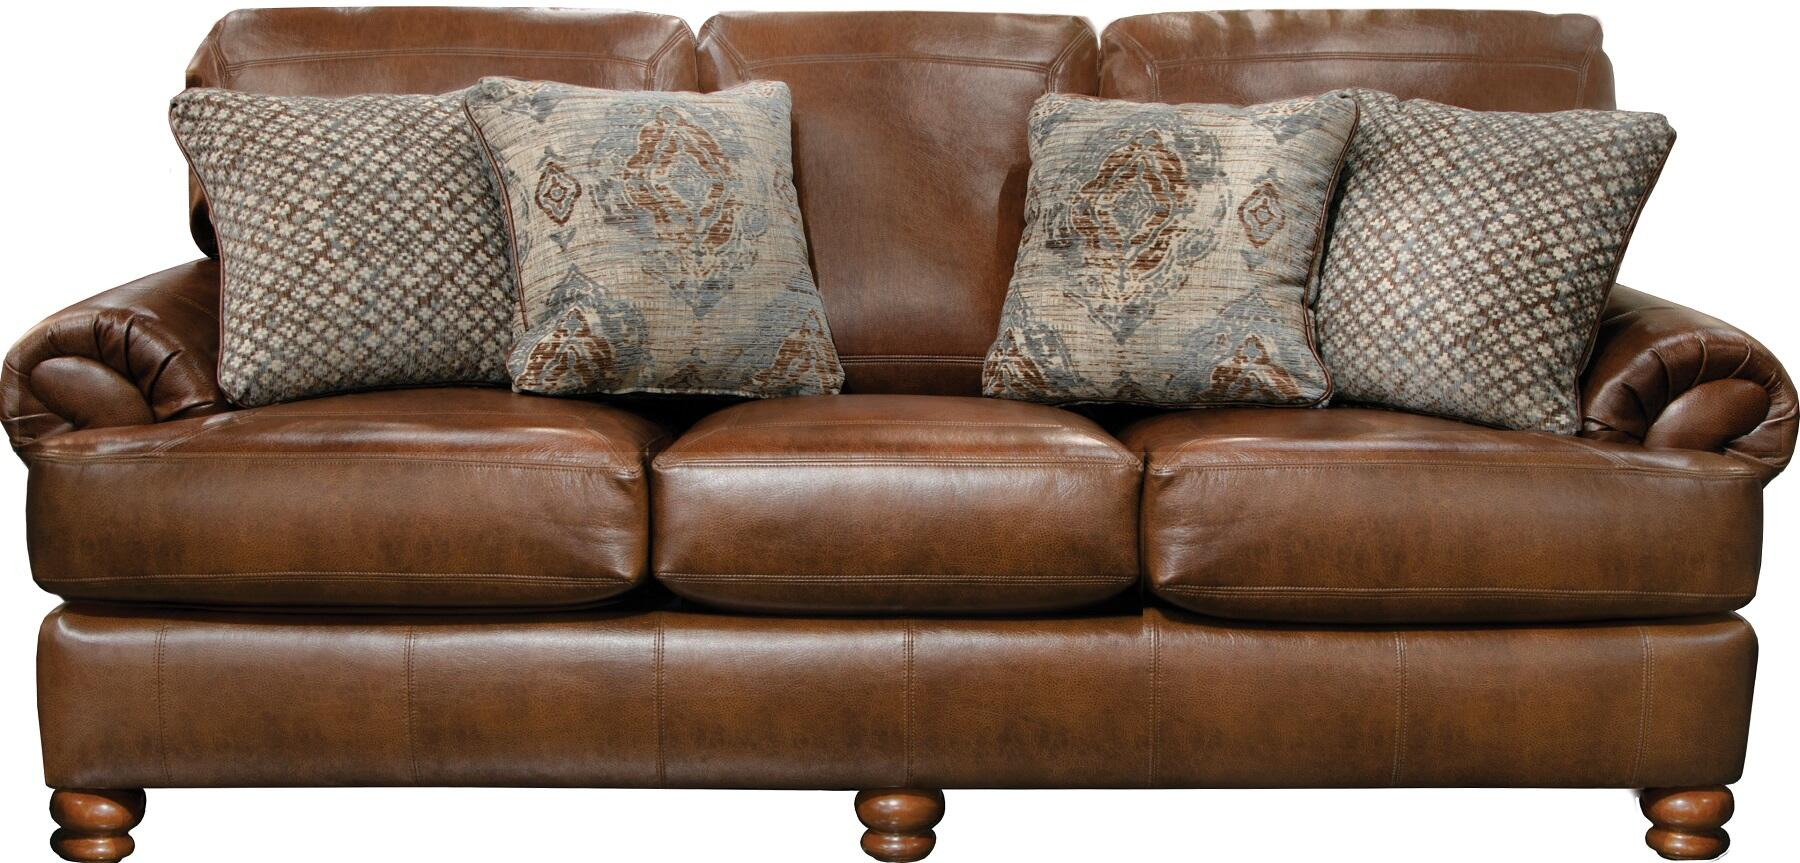 Jackson Furniture 436703116619126619 Southport Series Faux